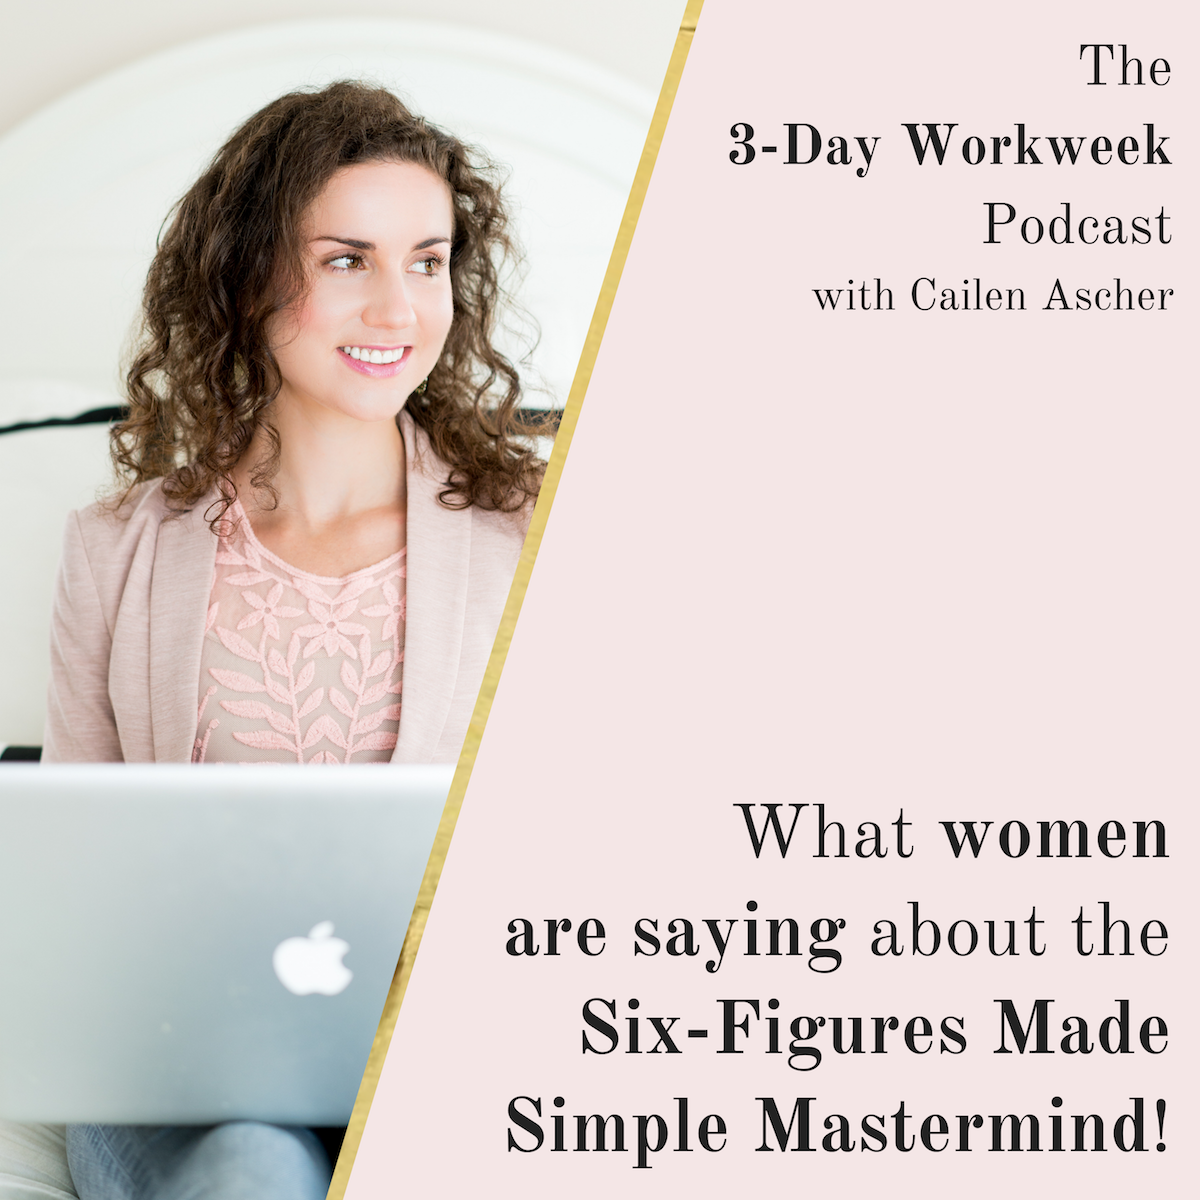 The 3-Day Workweek Podcast with Cailen Ascher - 2019-05-01- What Women Are Saying About the Six-Figures Made Simple Mastermind.png